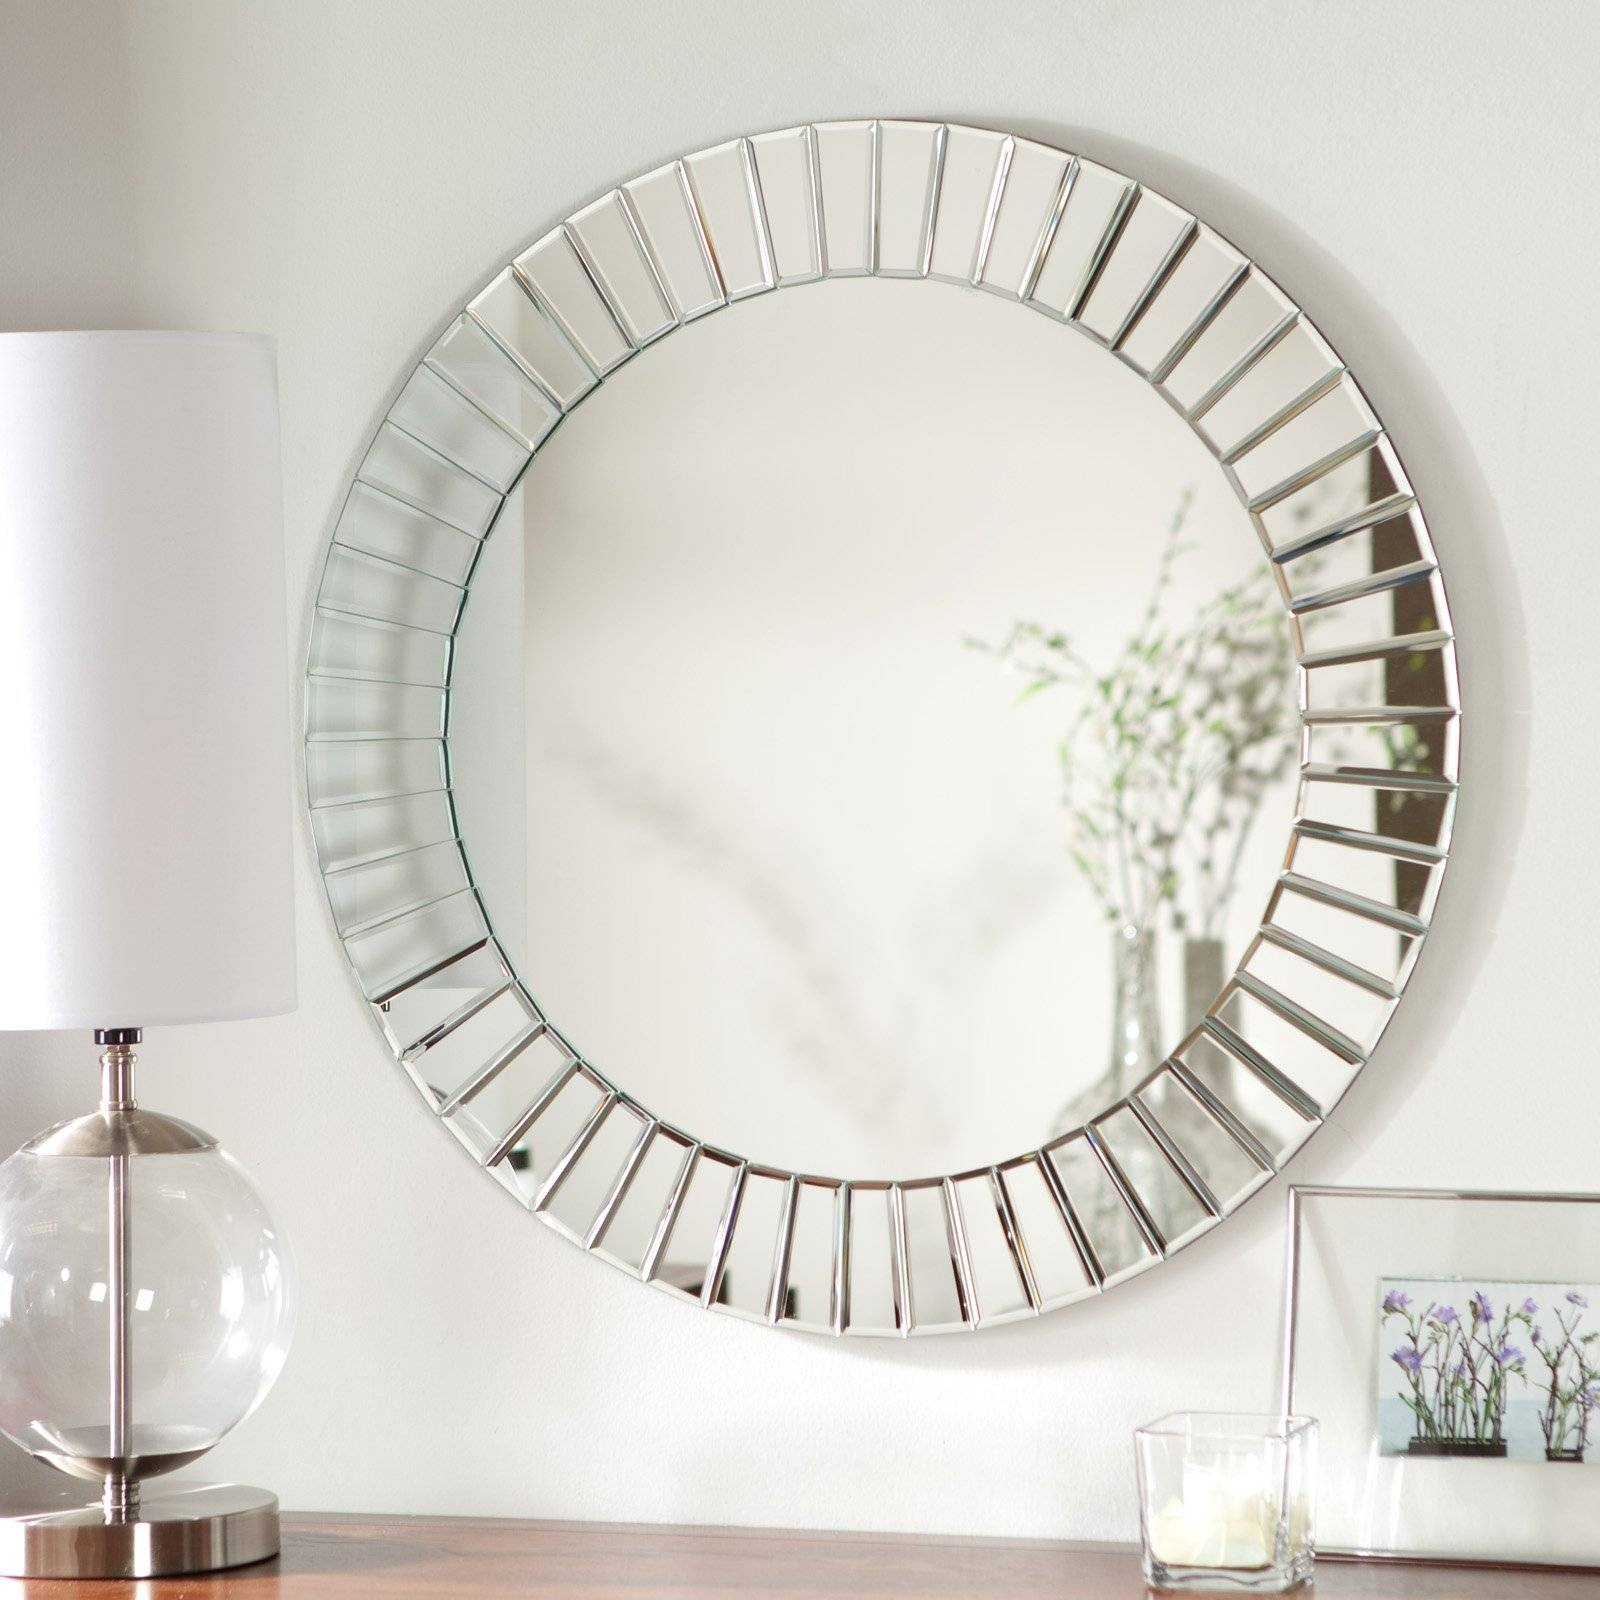 Decorative Wall Mirrors | Decorating Ideas regarding Decorative Small Mirrors (Image 8 of 25)